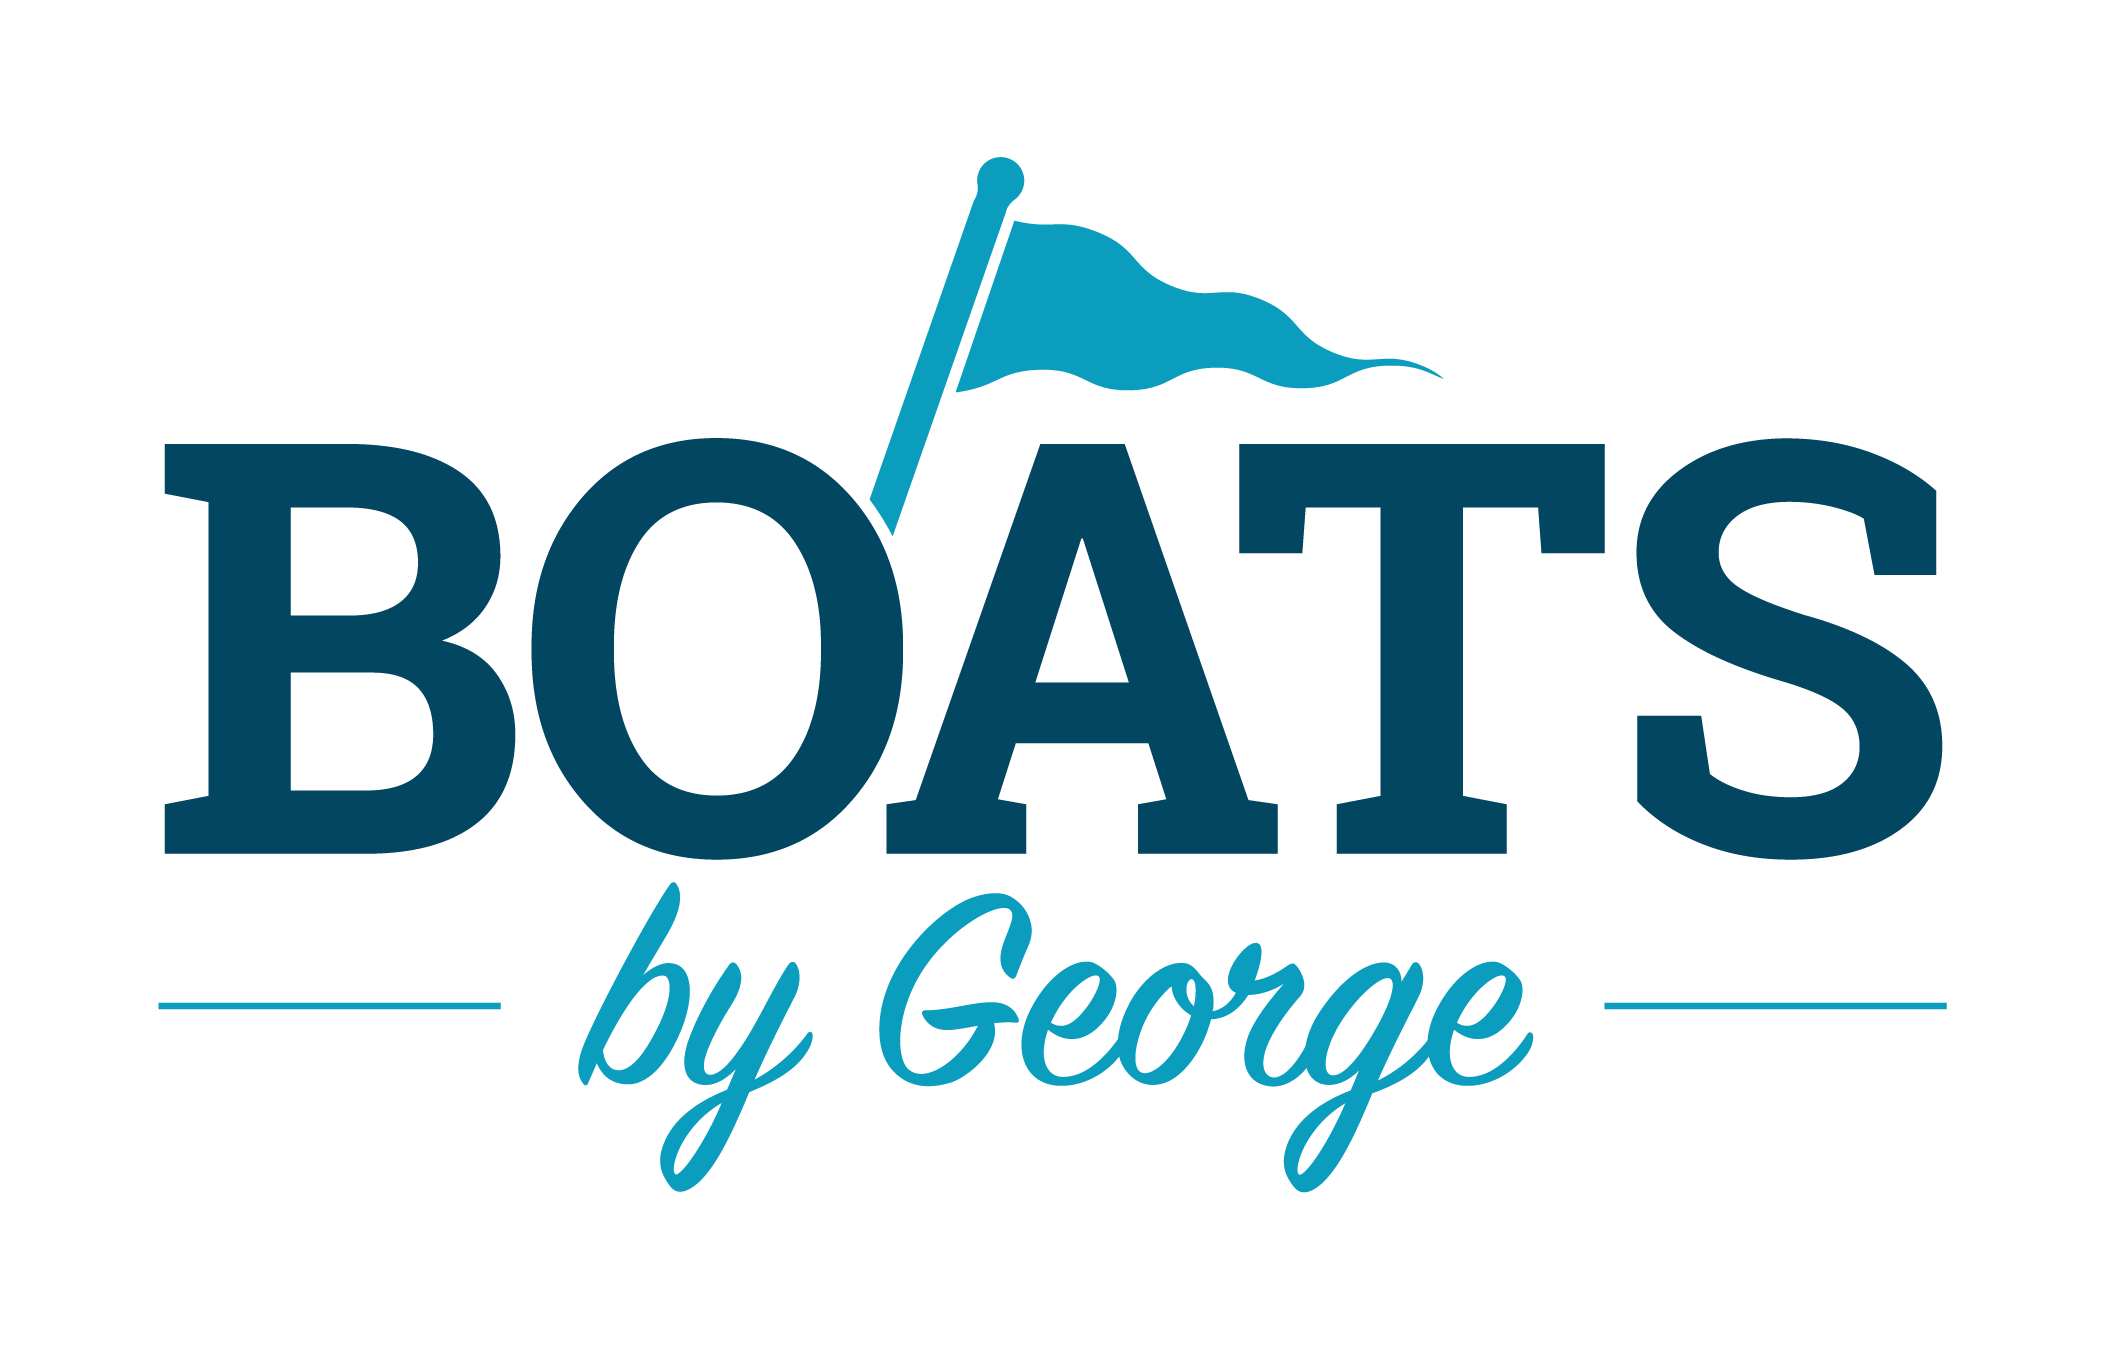 Boats By George Inc. logo